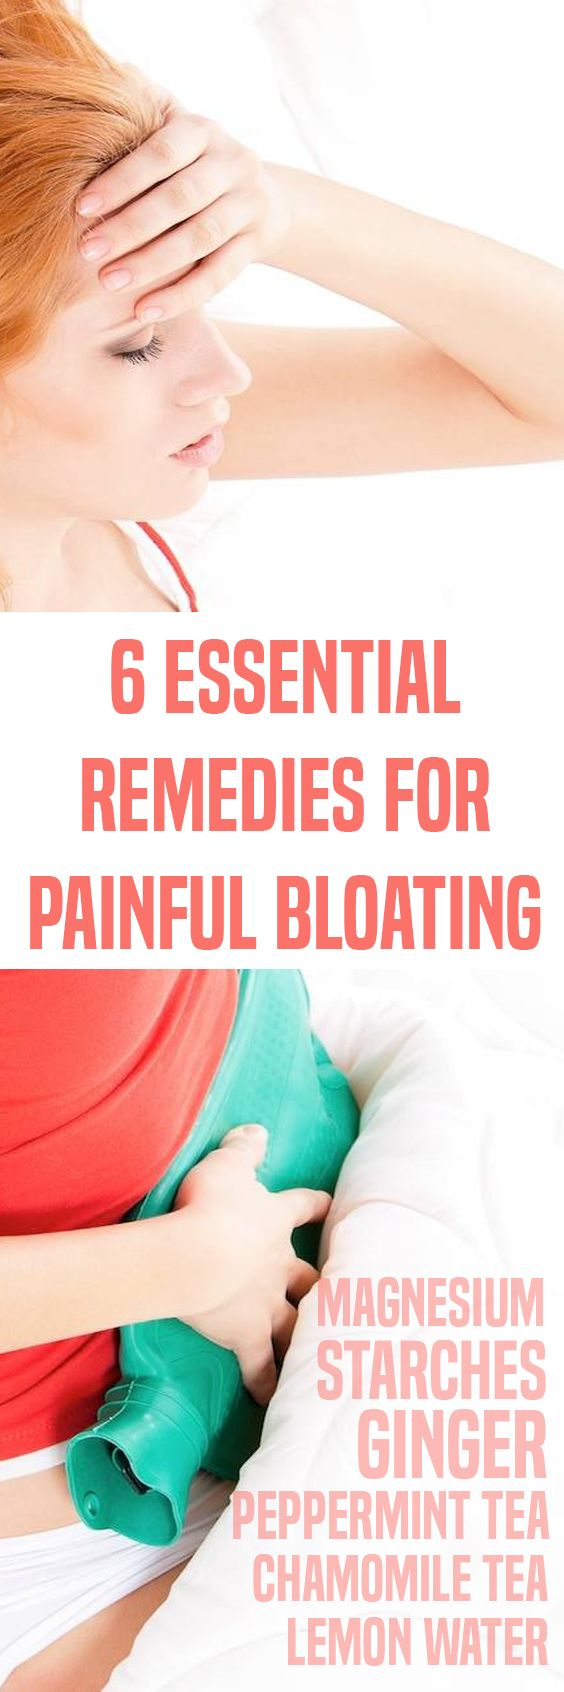 6 Essential Remedies For Painful Bloating